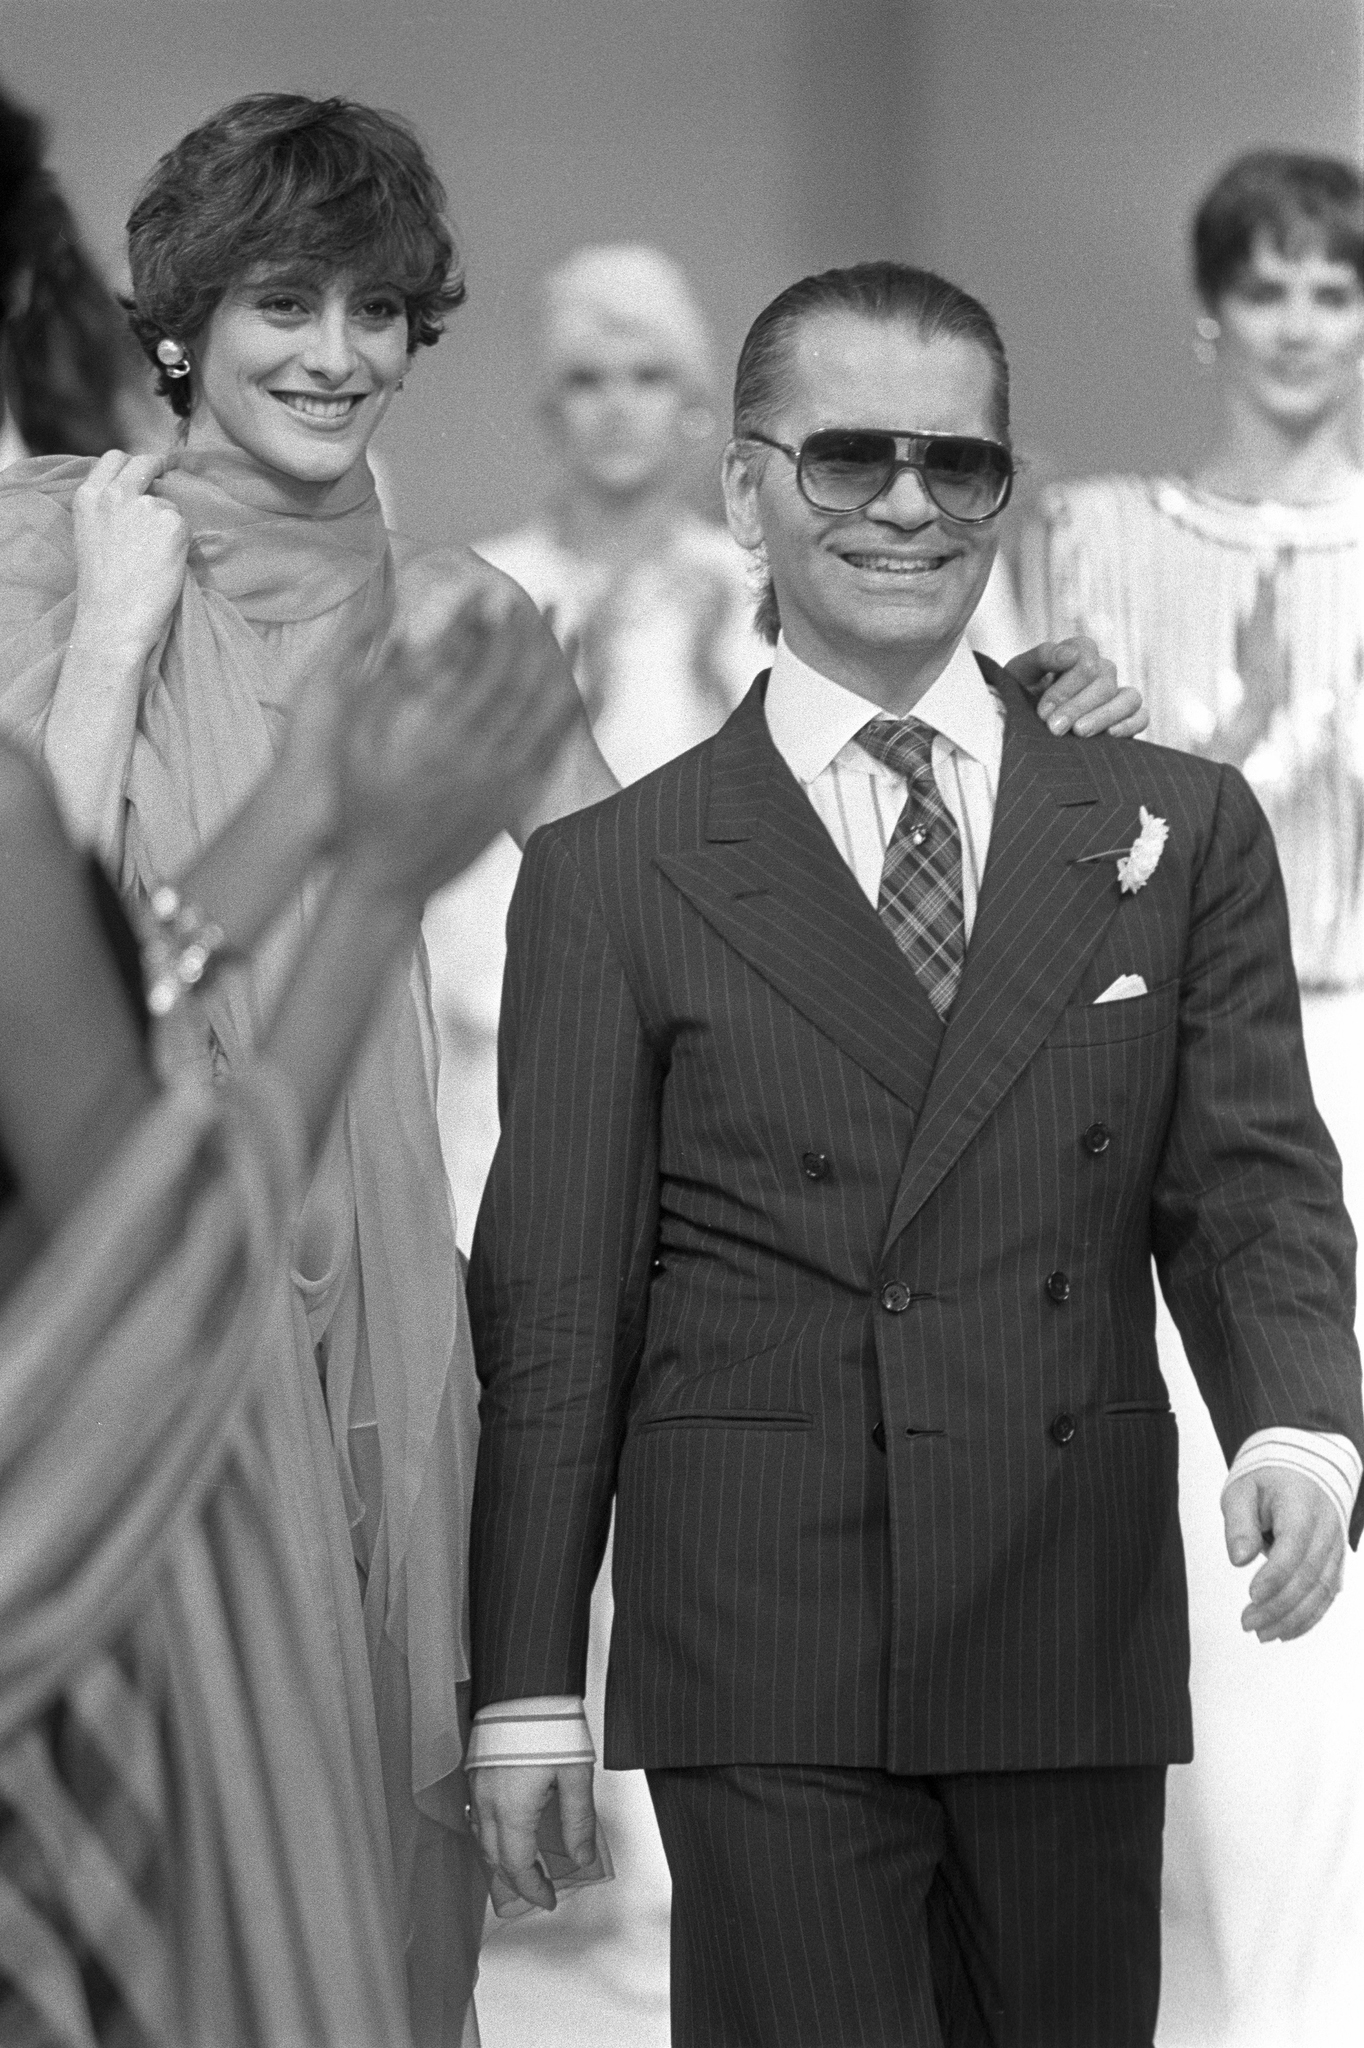 Designer Karl Lagerfeld at the end of his Spring 1985 RTW collection for Chanel